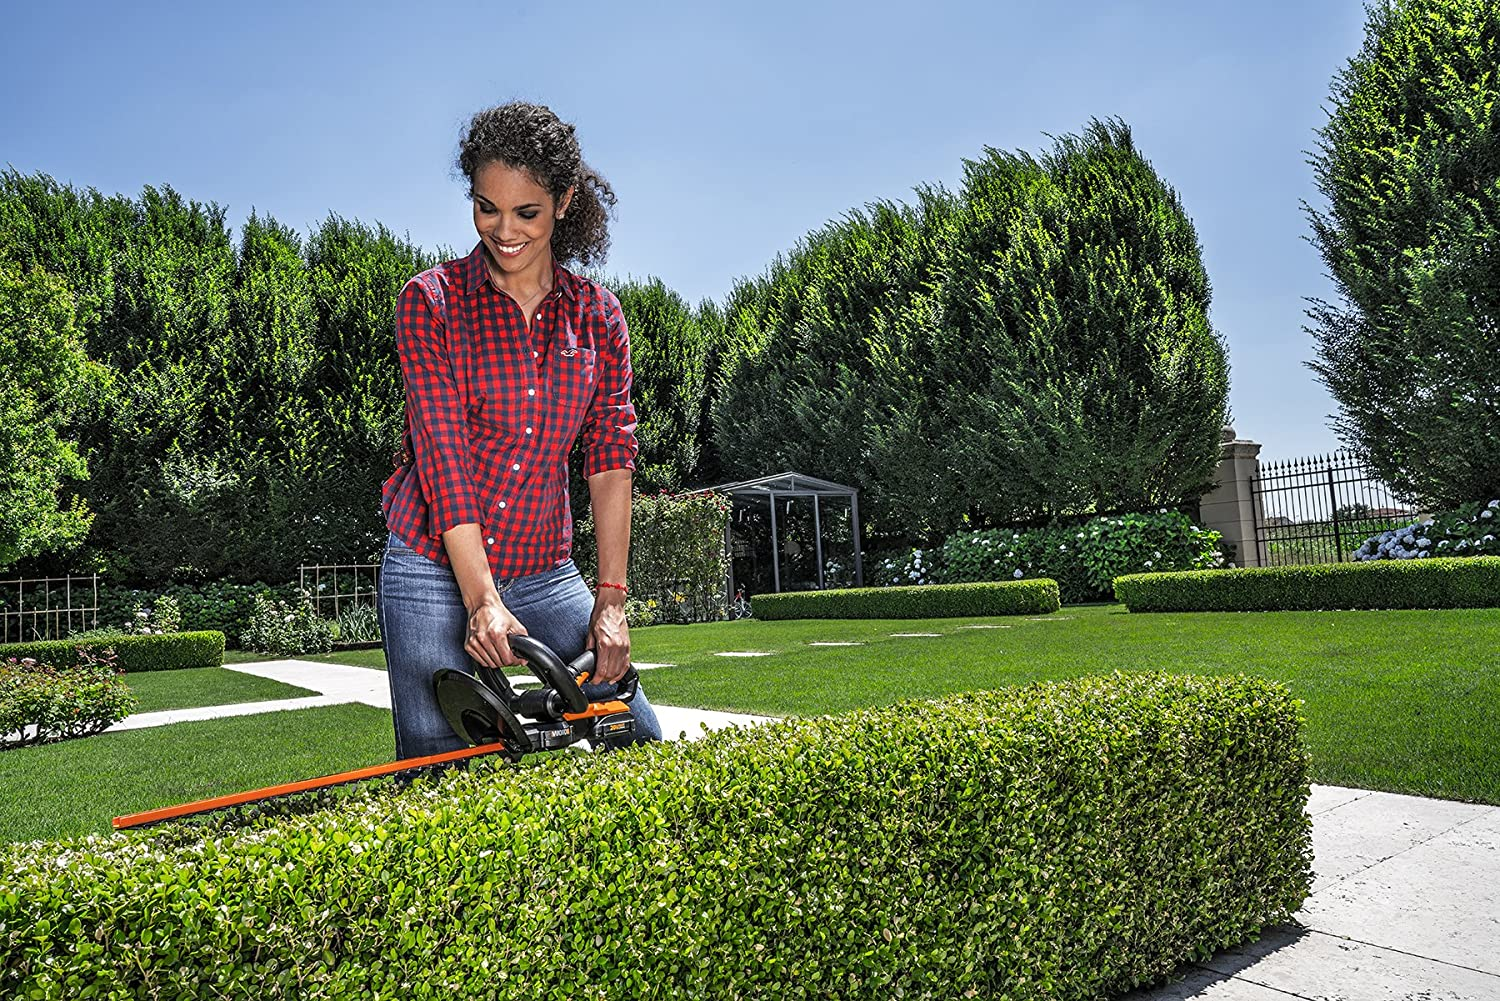 Worx WG255.1 20V PowerShare Cordless Hedge Trimmer trimming